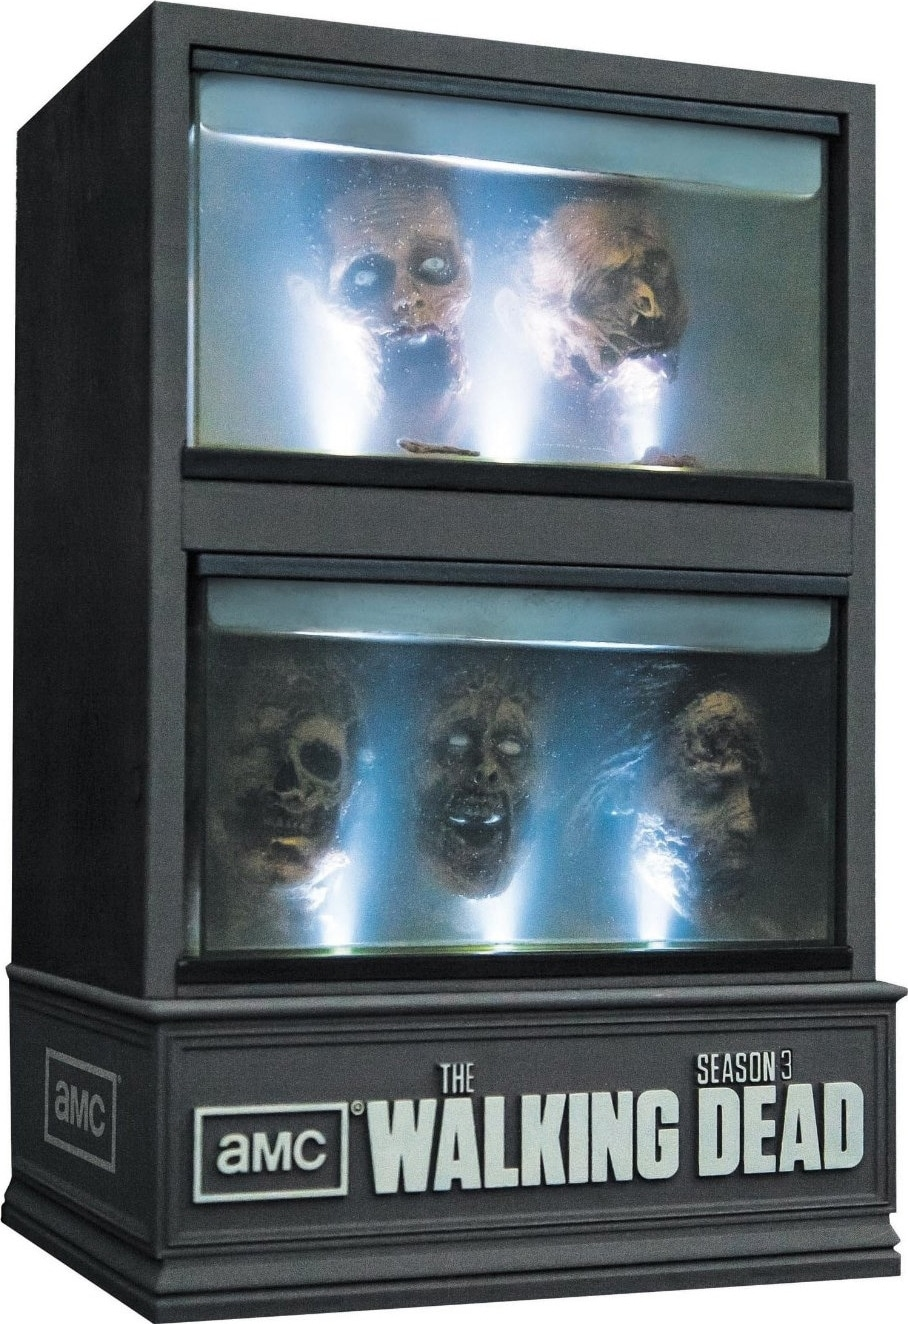 The Walking Dead Season 3 (Limited Edition) (Blu-ray Disc)